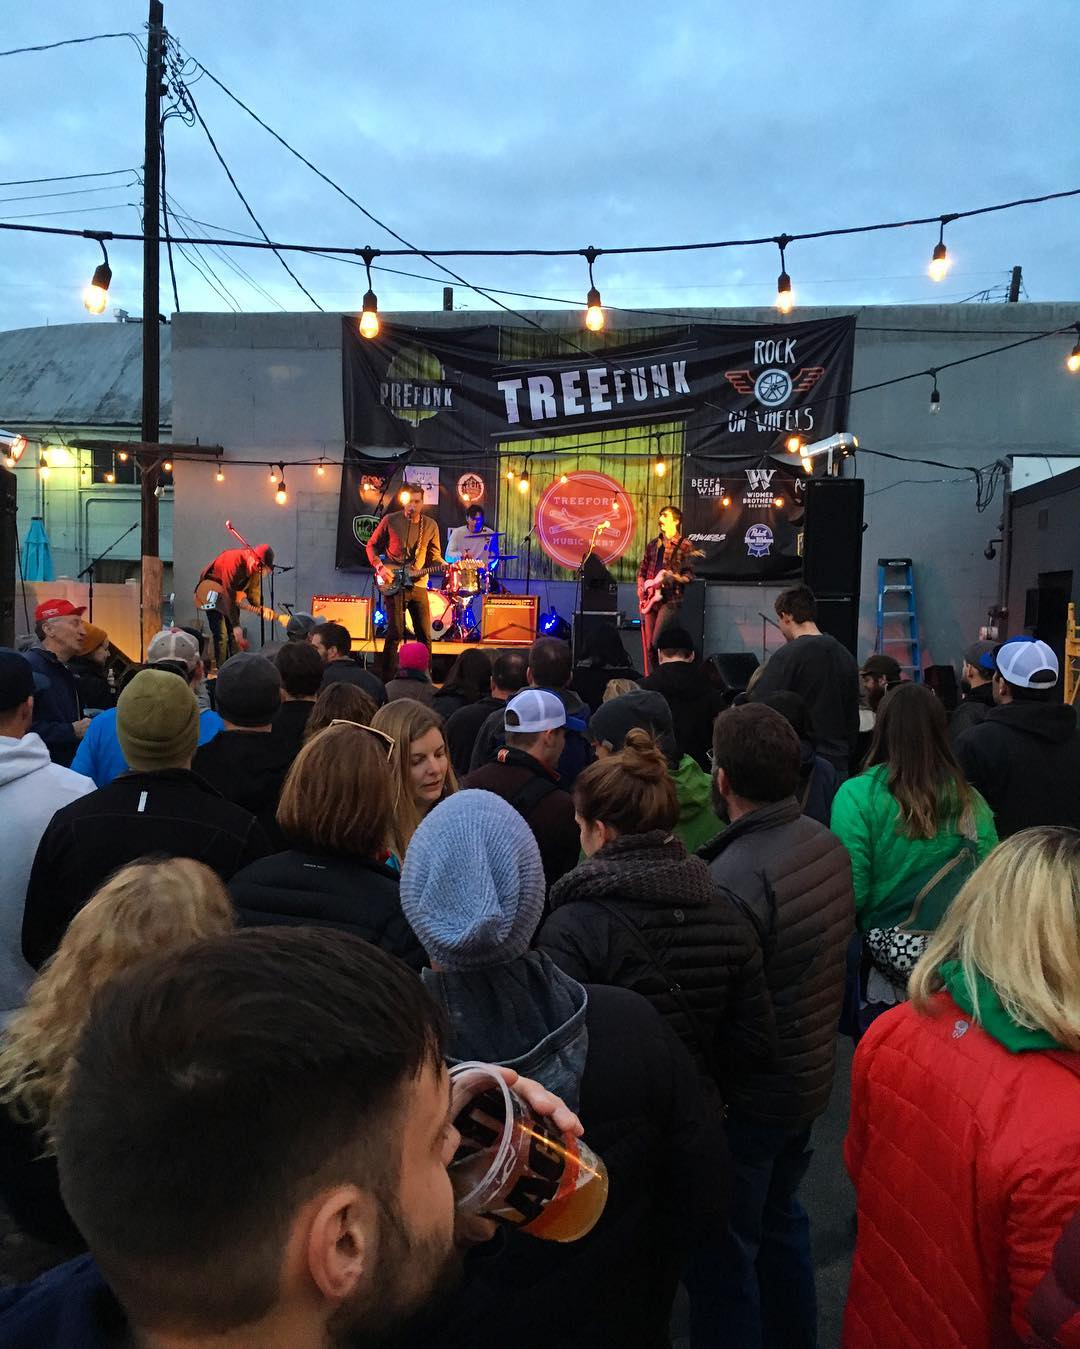 BOISE- We're at @prefunkbeerbar for @treefortfest this weekend. Don't forget to swing by our booth! #Treefort2016